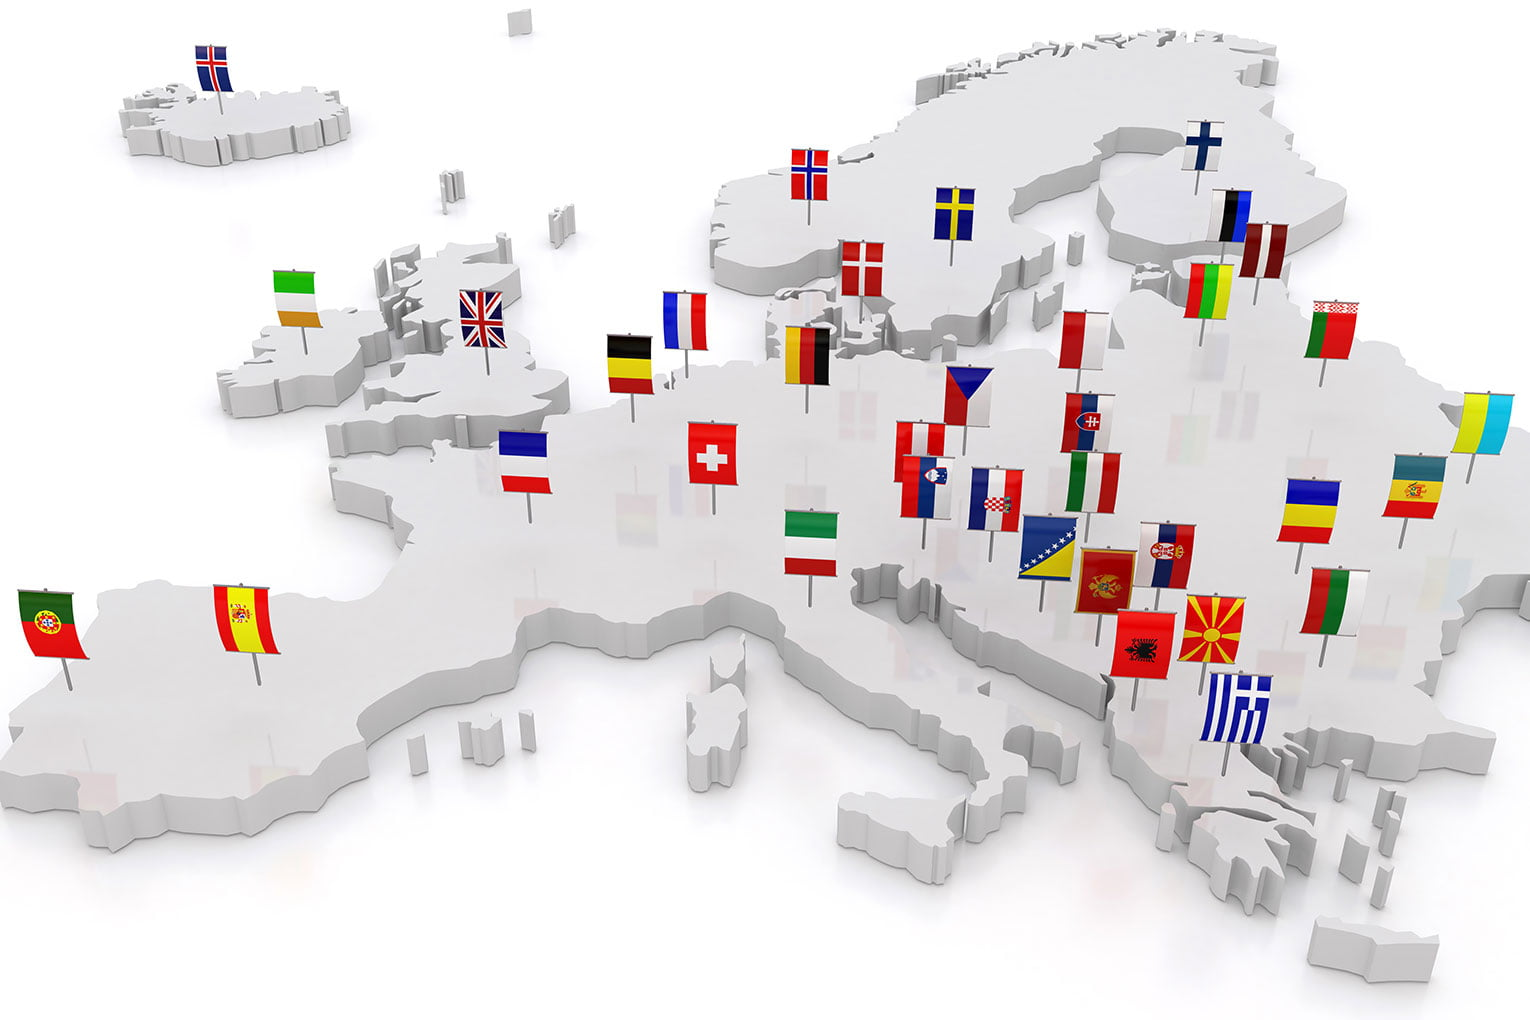 Over one-third of SMEs think UK should remain in Single Market